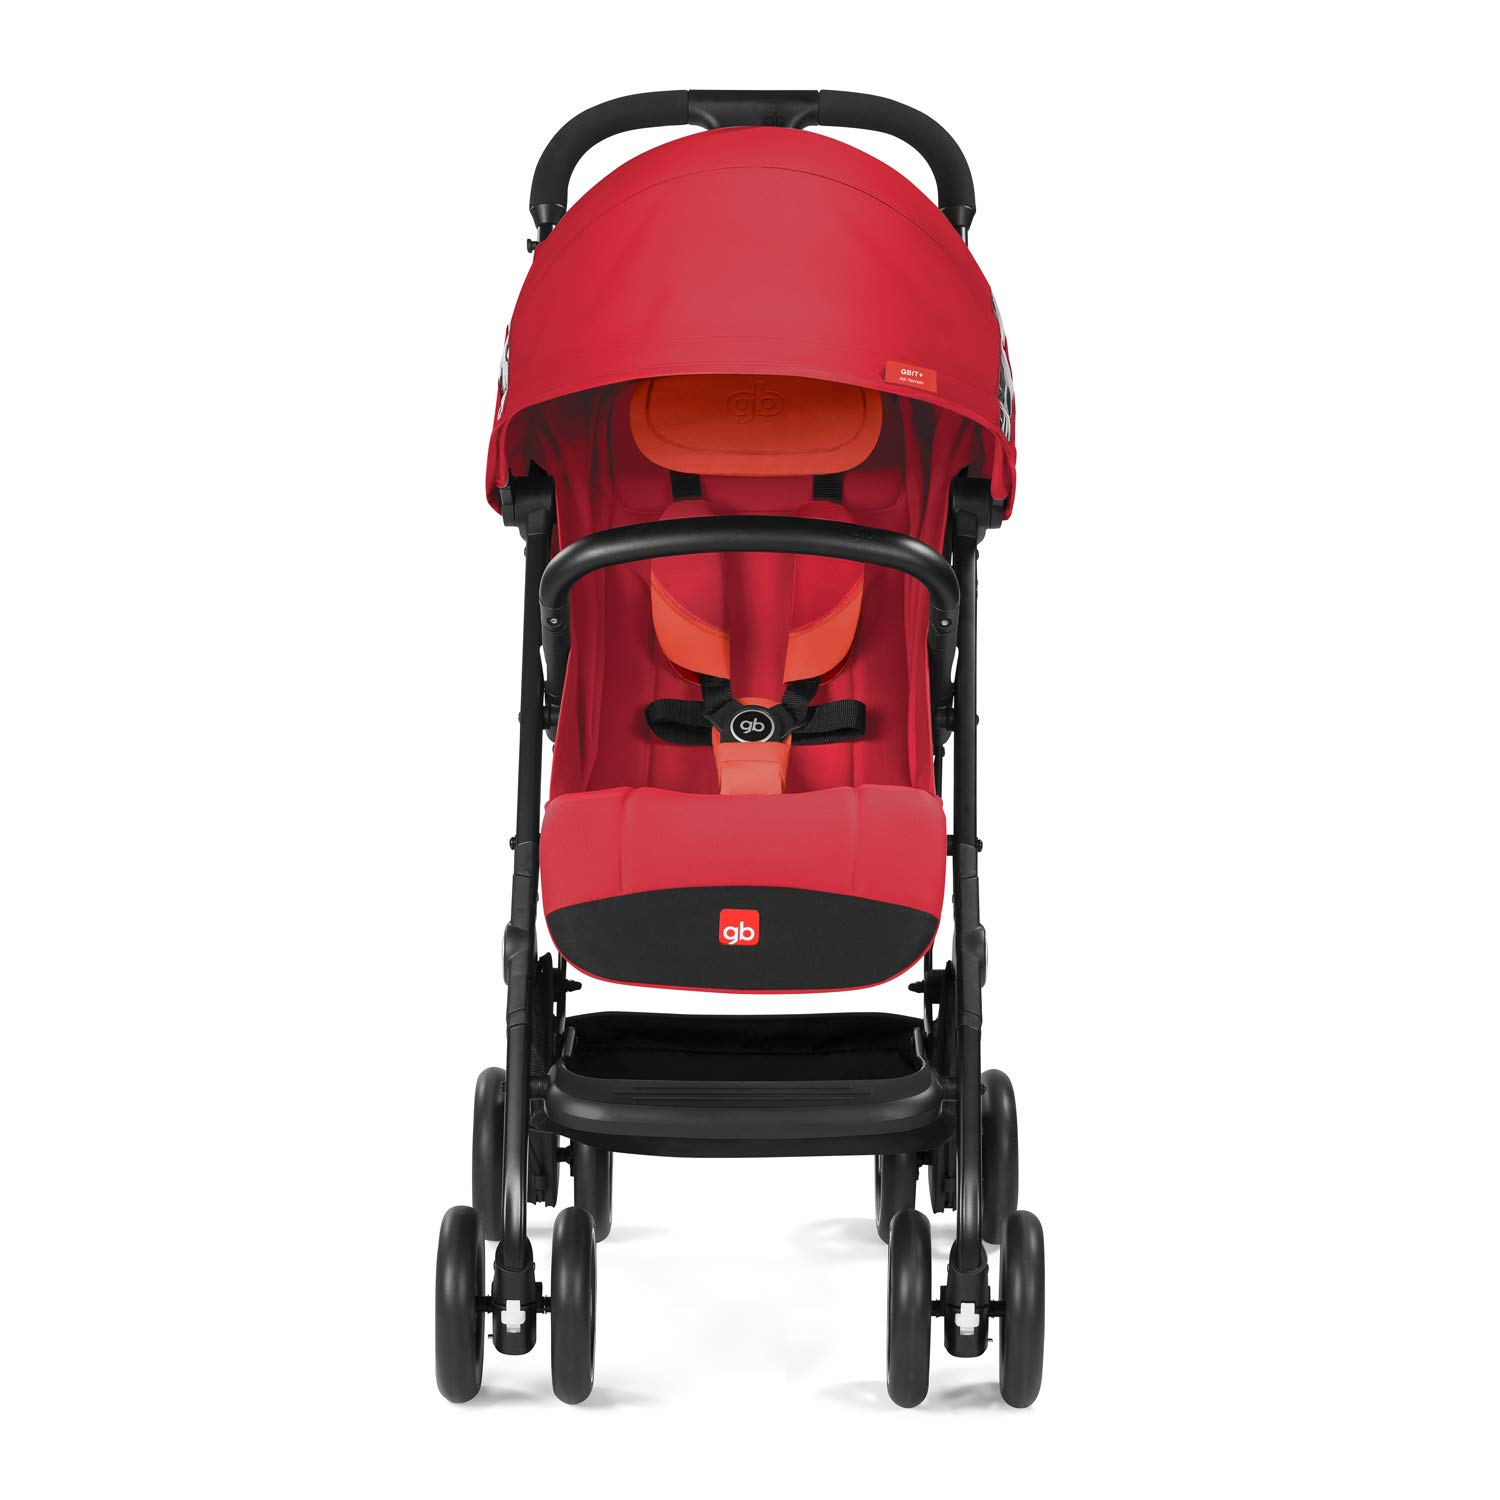 gb 2019 Buggy QBIT+ All-Terrain with Bumper Bar''Night Blue''- from Birth up to 17 kg (Approx. 4 Years) - GoodBaby QBIT Plus by gb (Image #2)